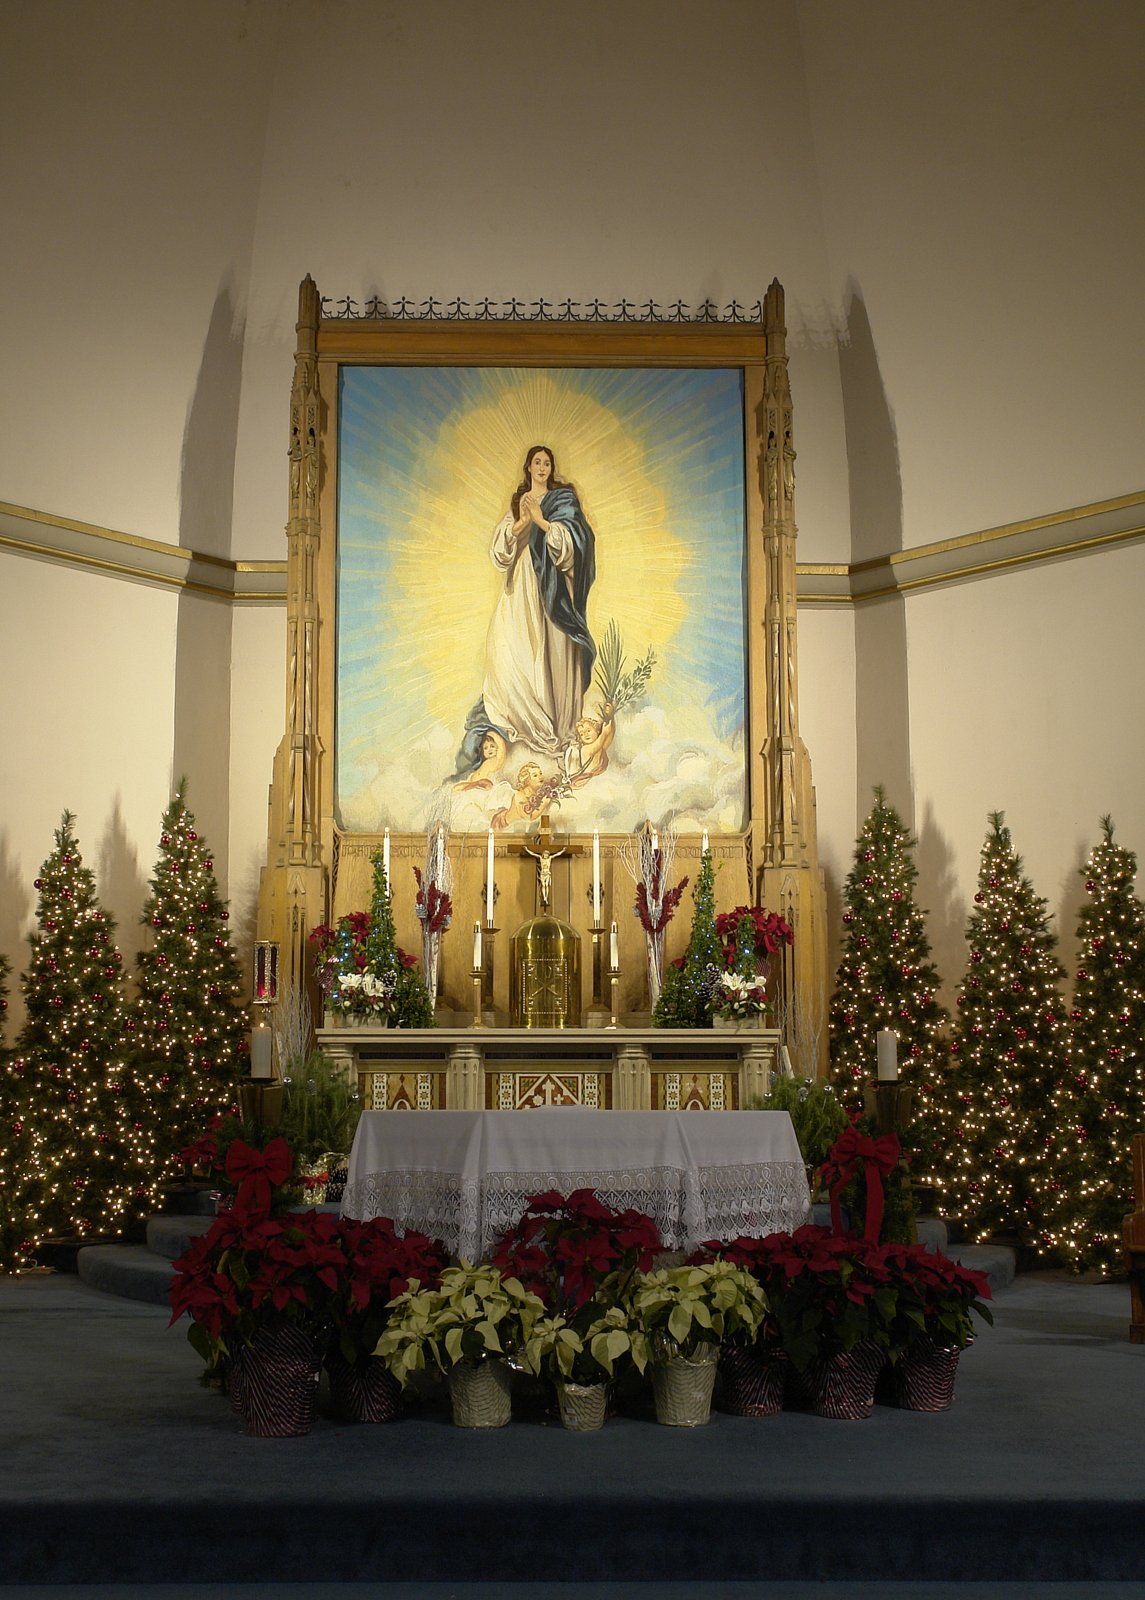 Mary Tapestry at Christmas